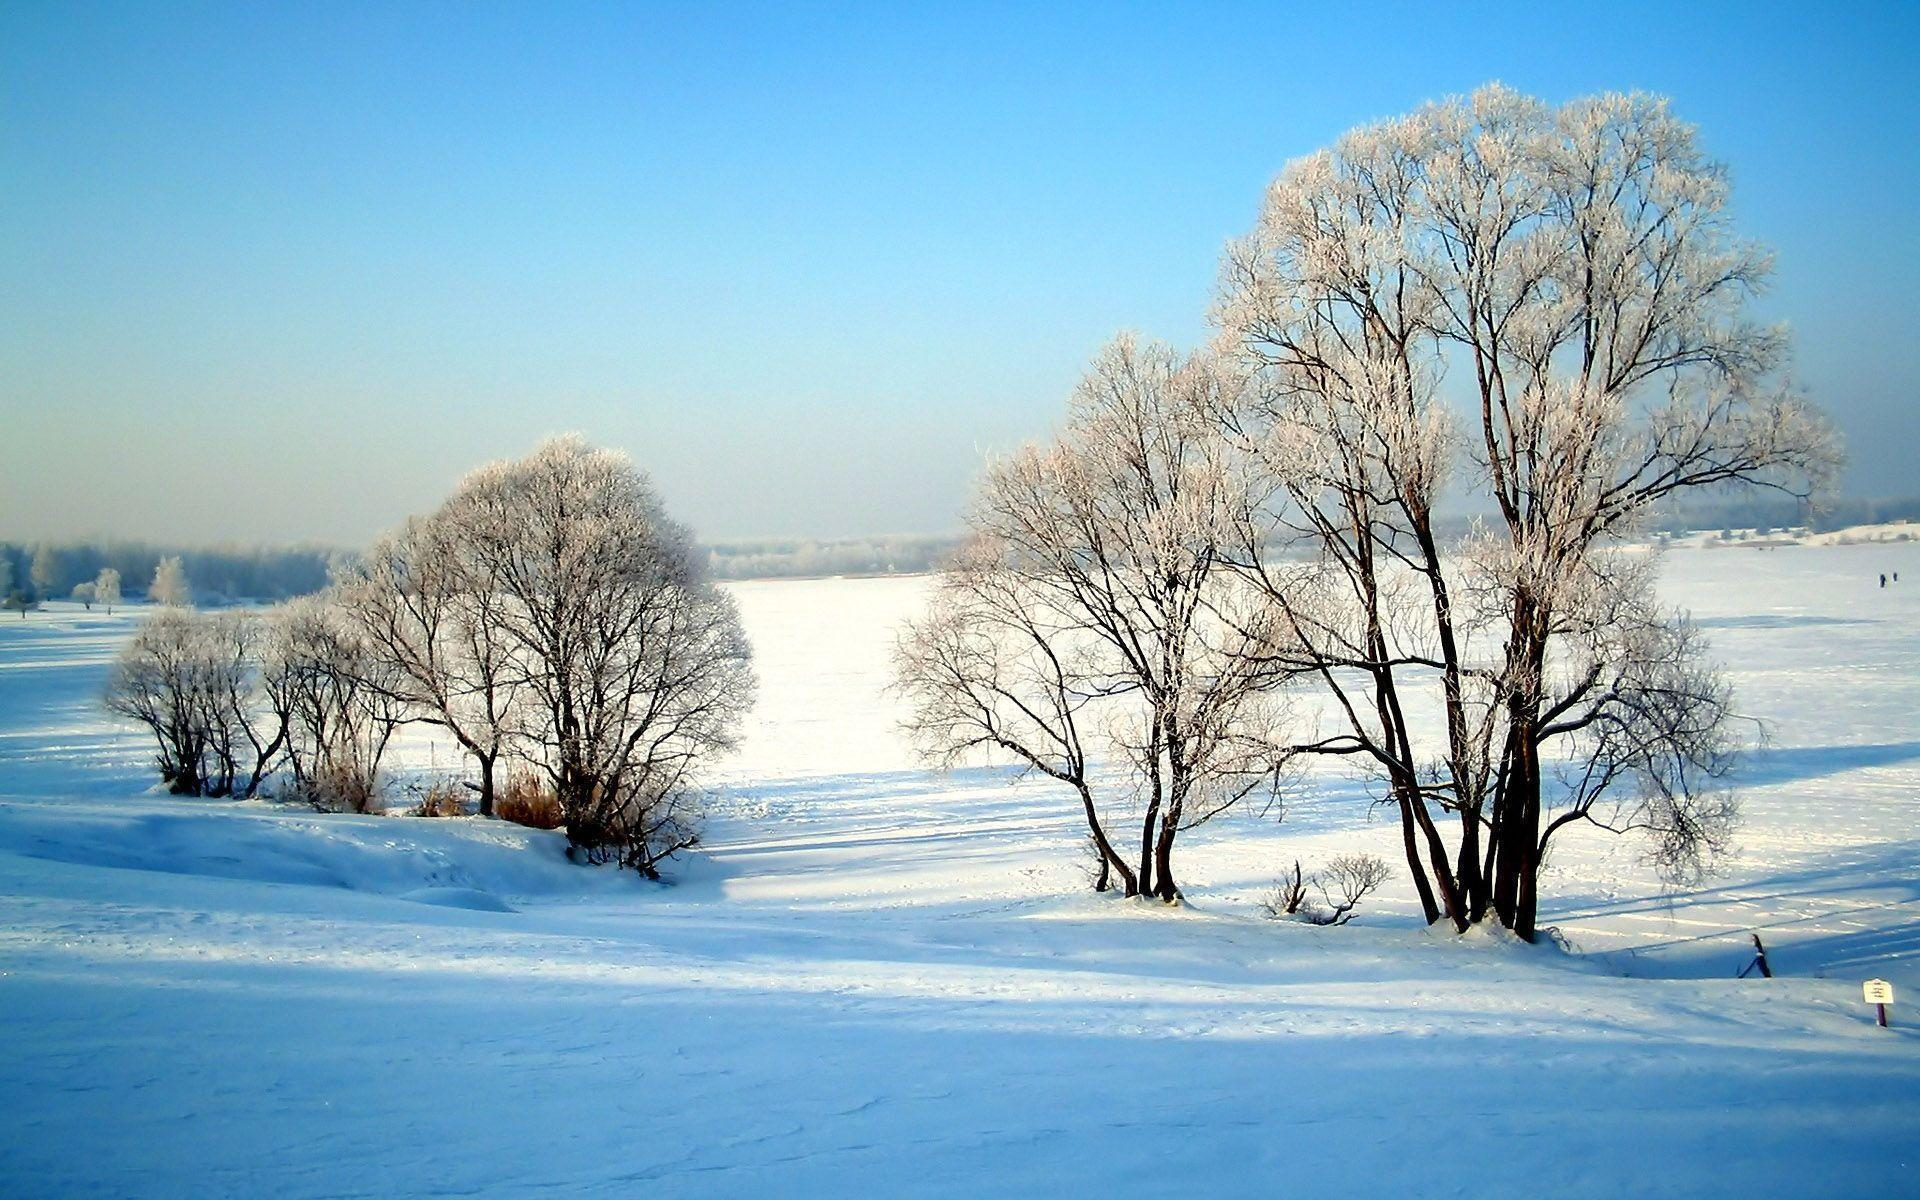 Winter Scene Wallpapers and Screensavers